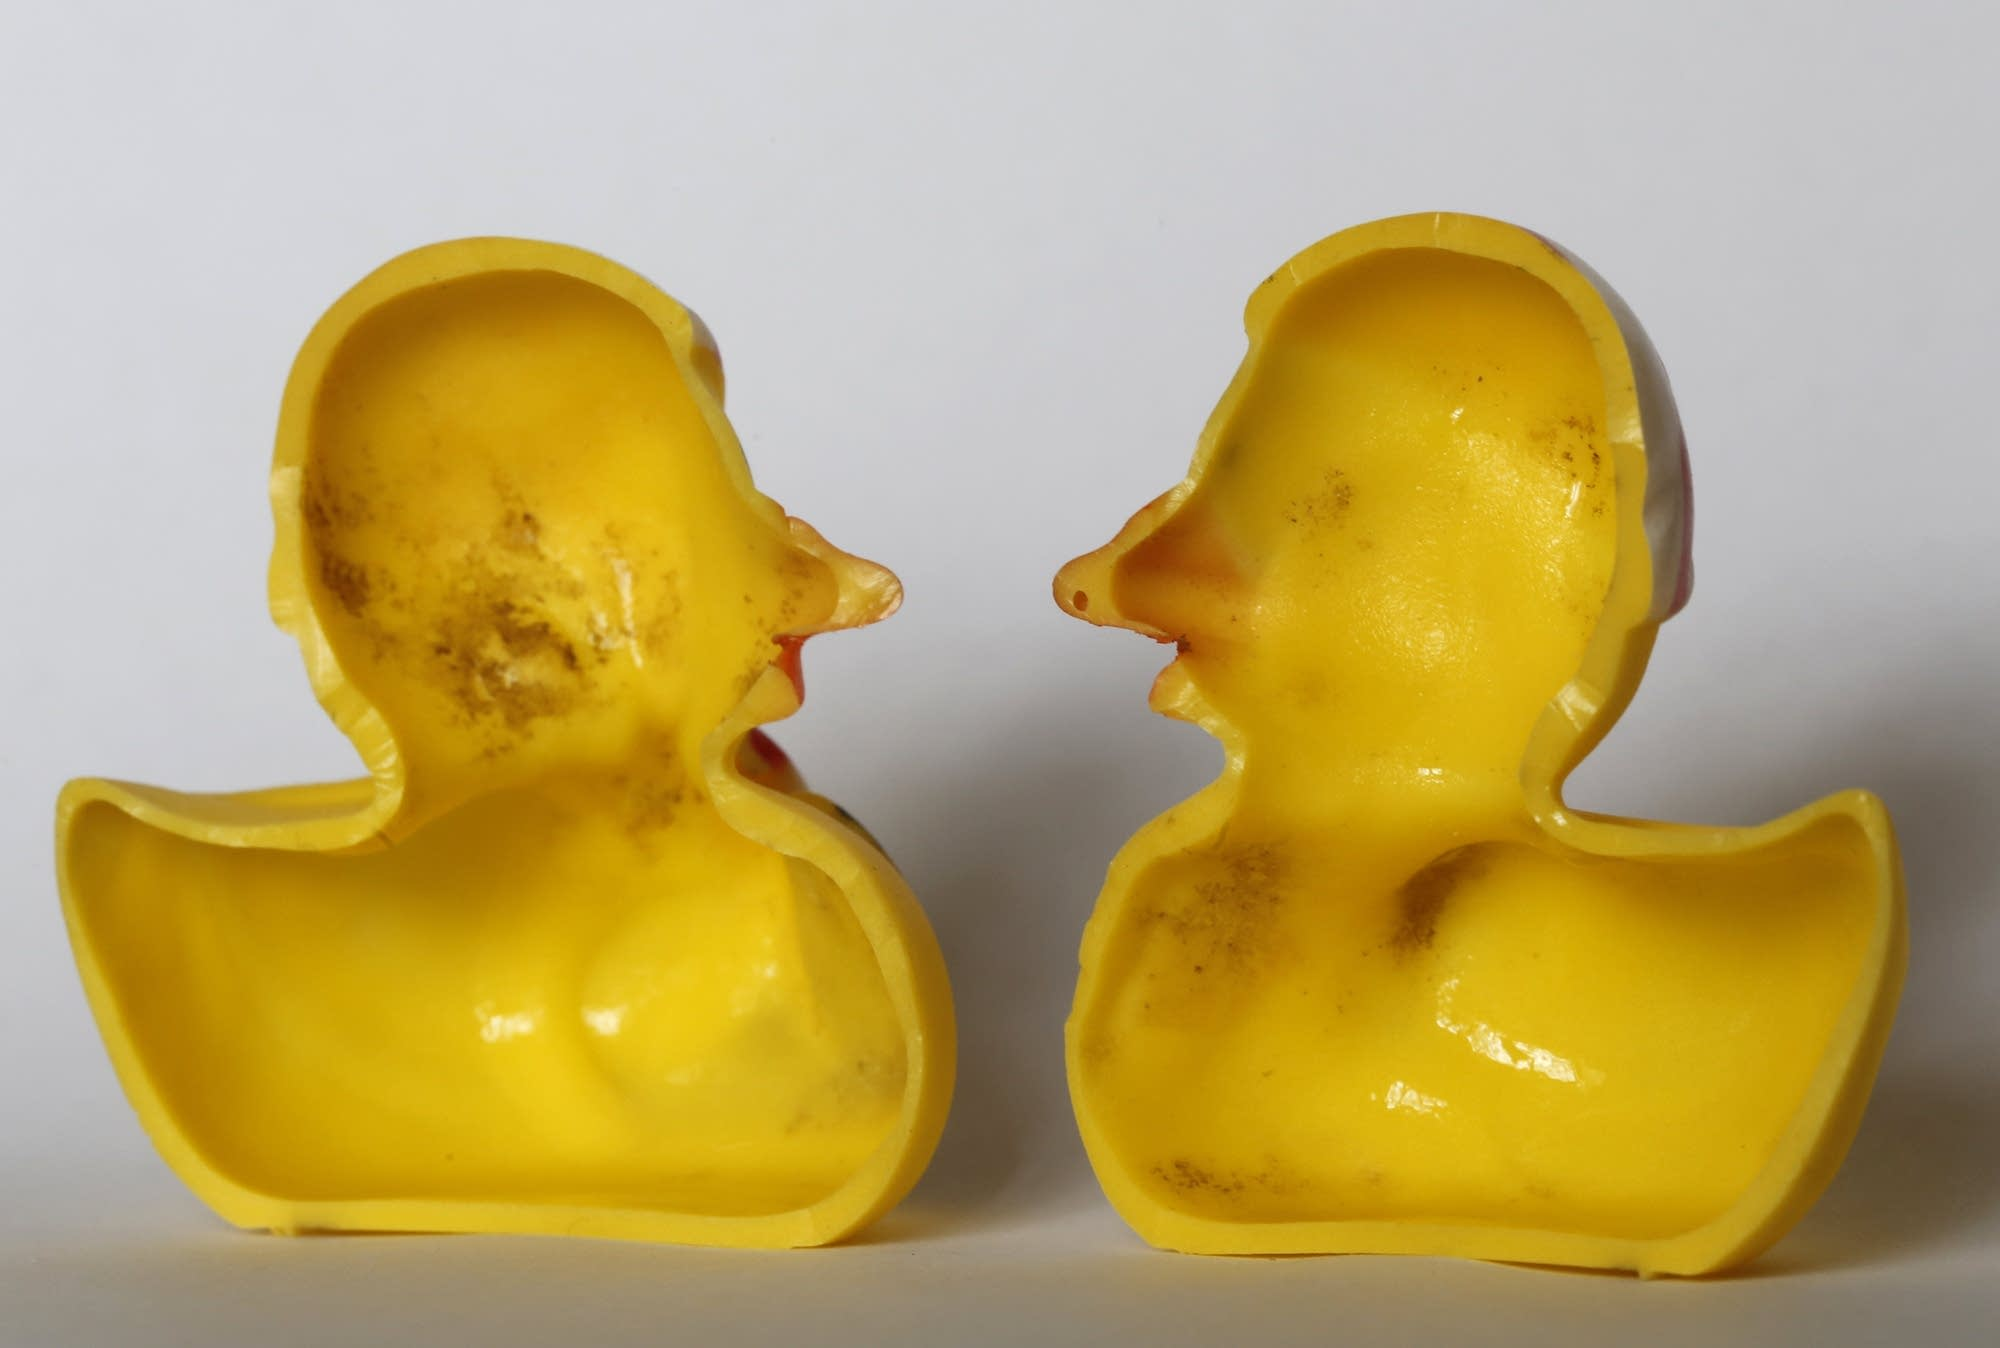 Danger: a mucky rubber ducky is a haven for bacteria, says study